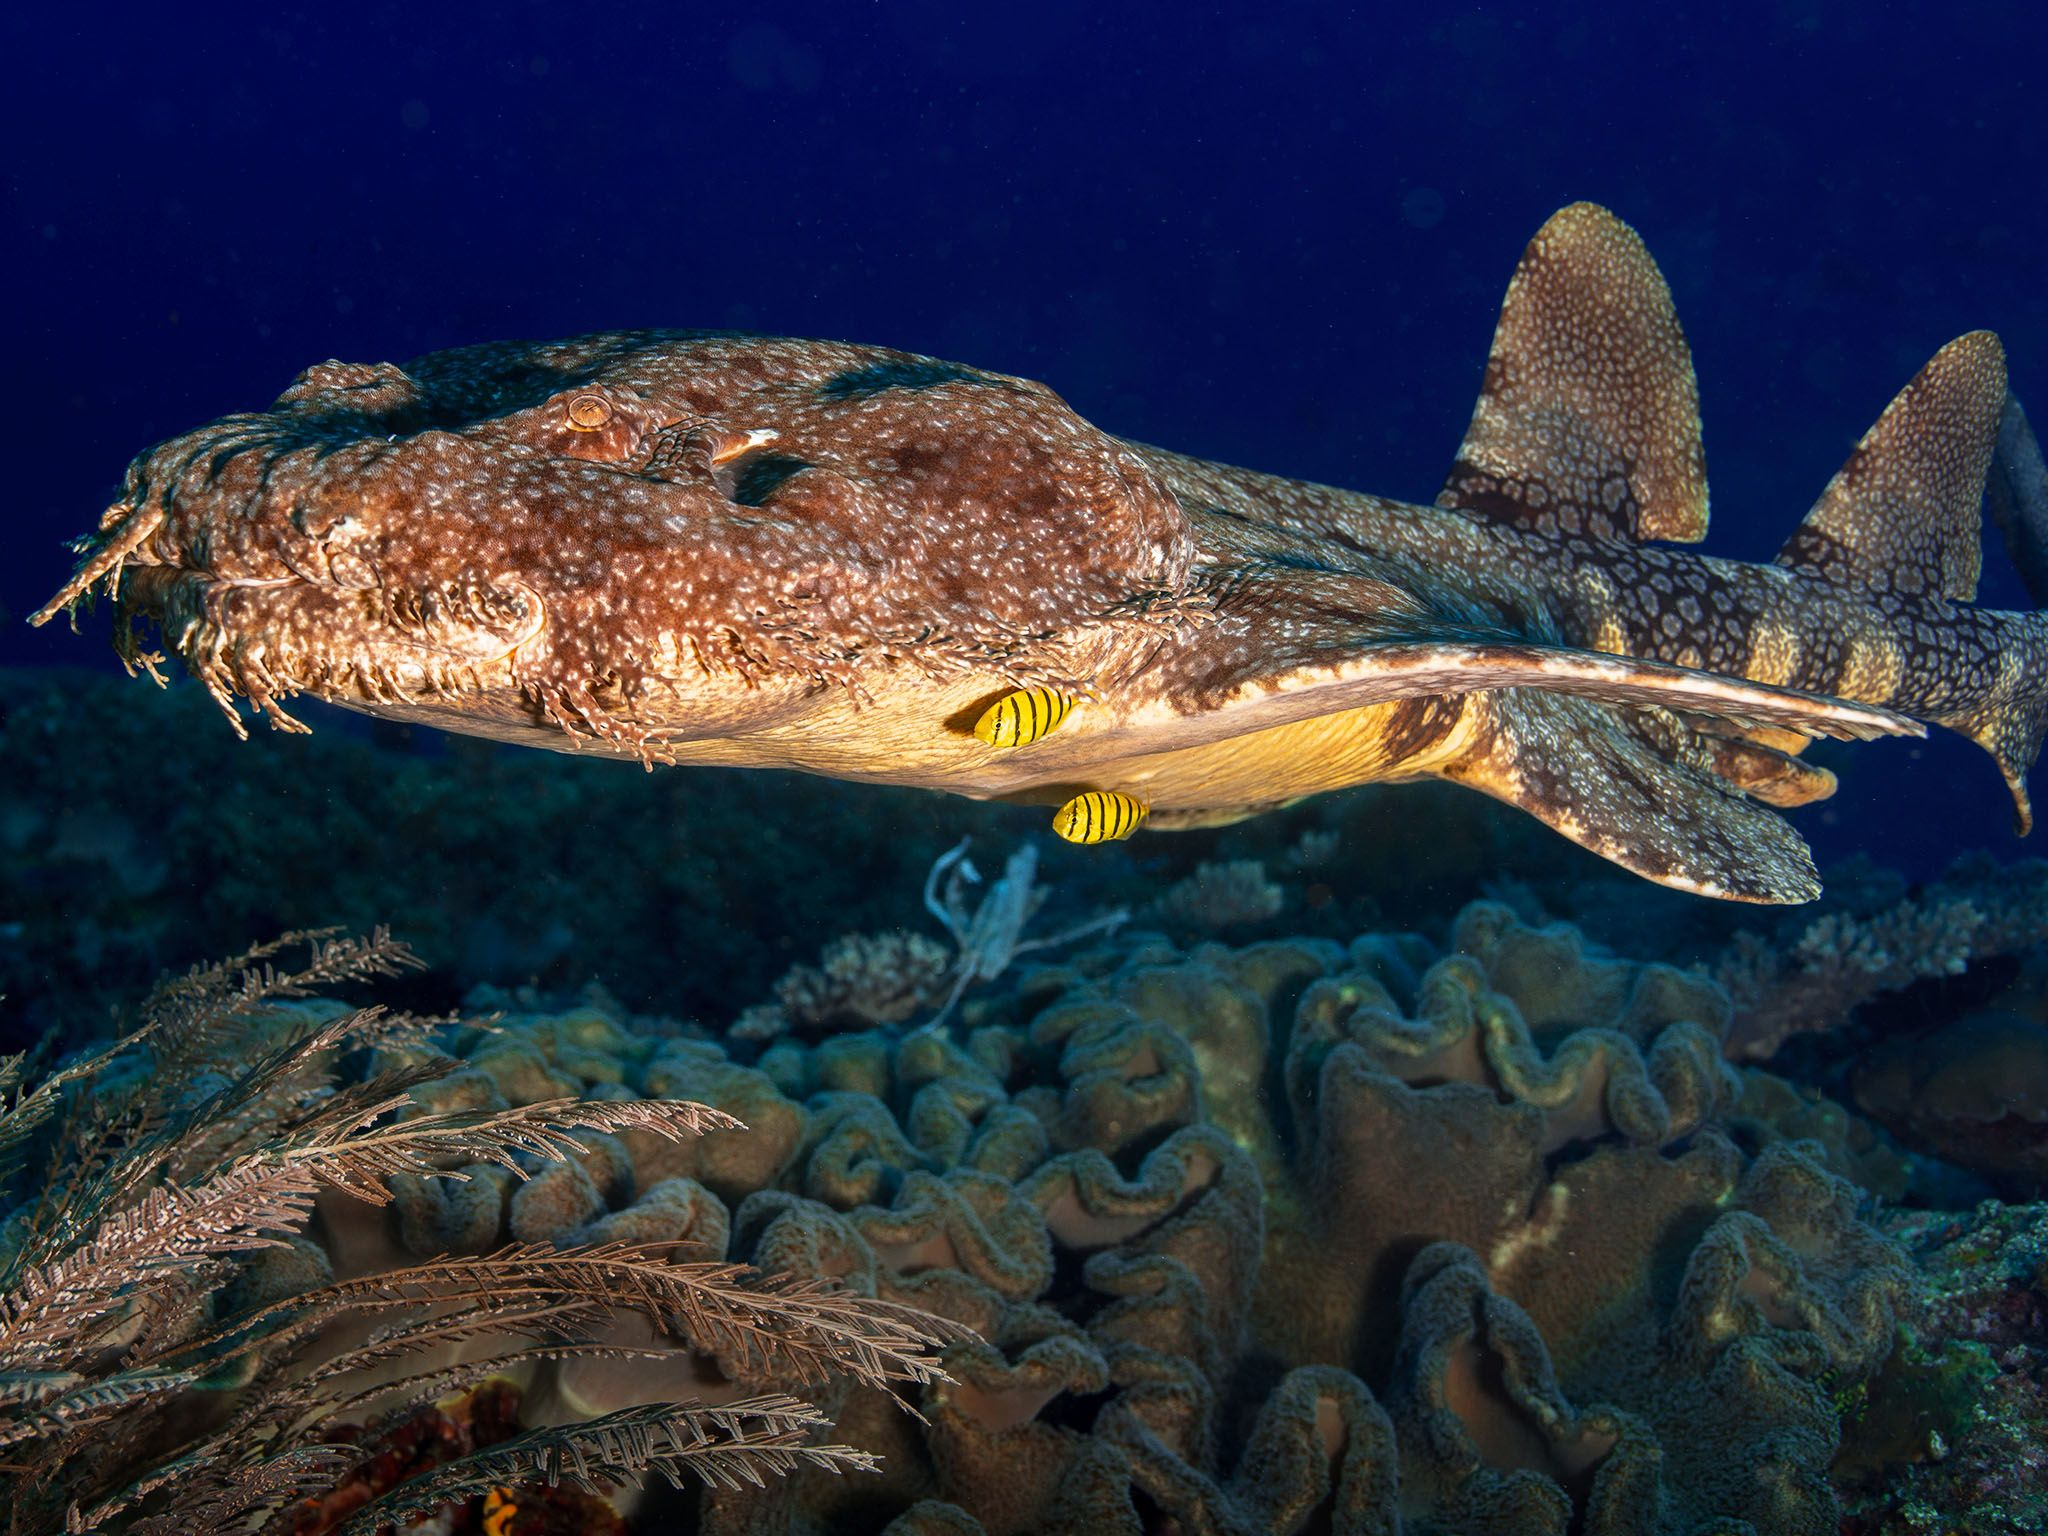 The wobbegong is the giant whale shark's closest relative. This image is from World's Weirdest. [Фото дня - Август 2015]